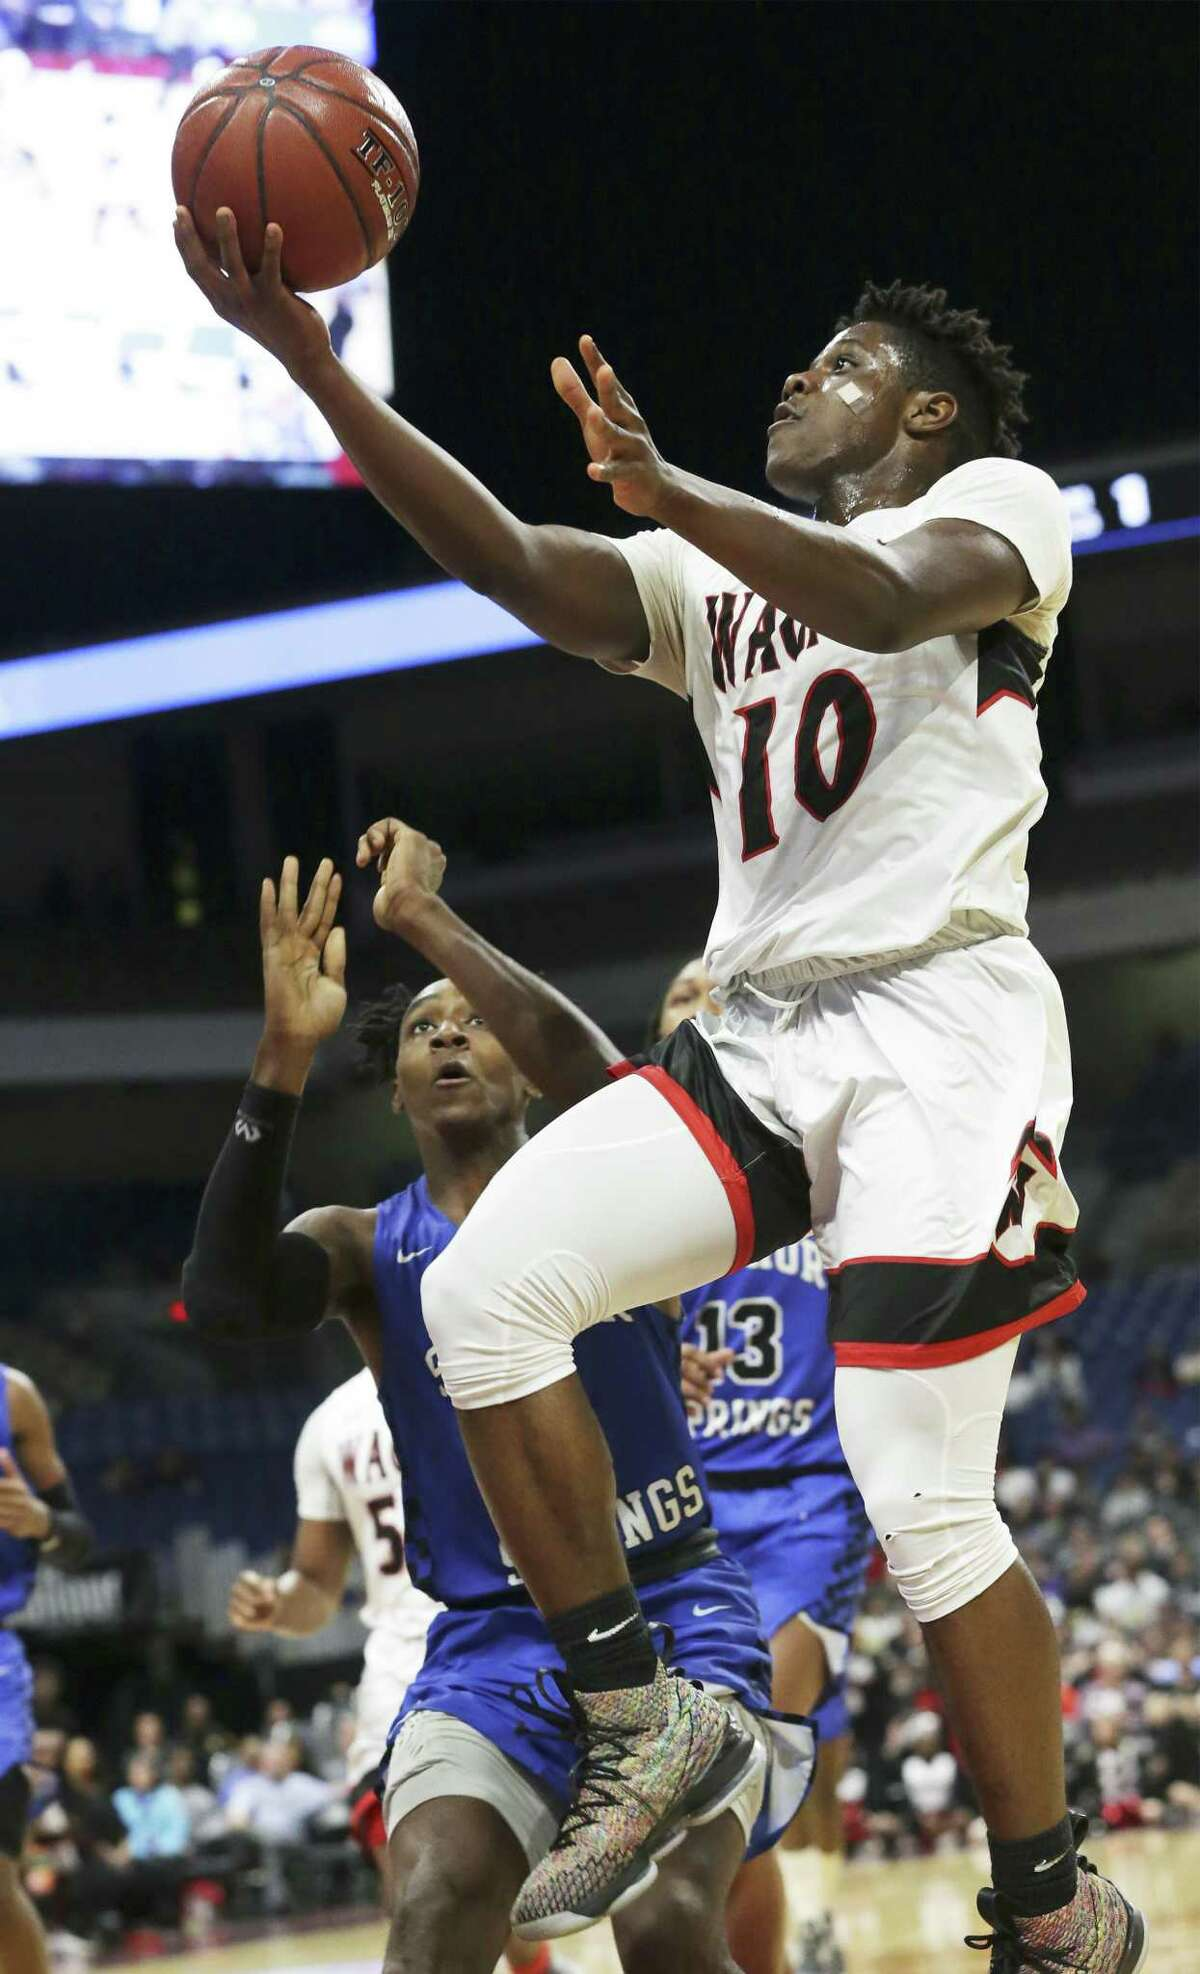 Isaiah Kennedy and the T-Birds will play Saturday for their first state title.